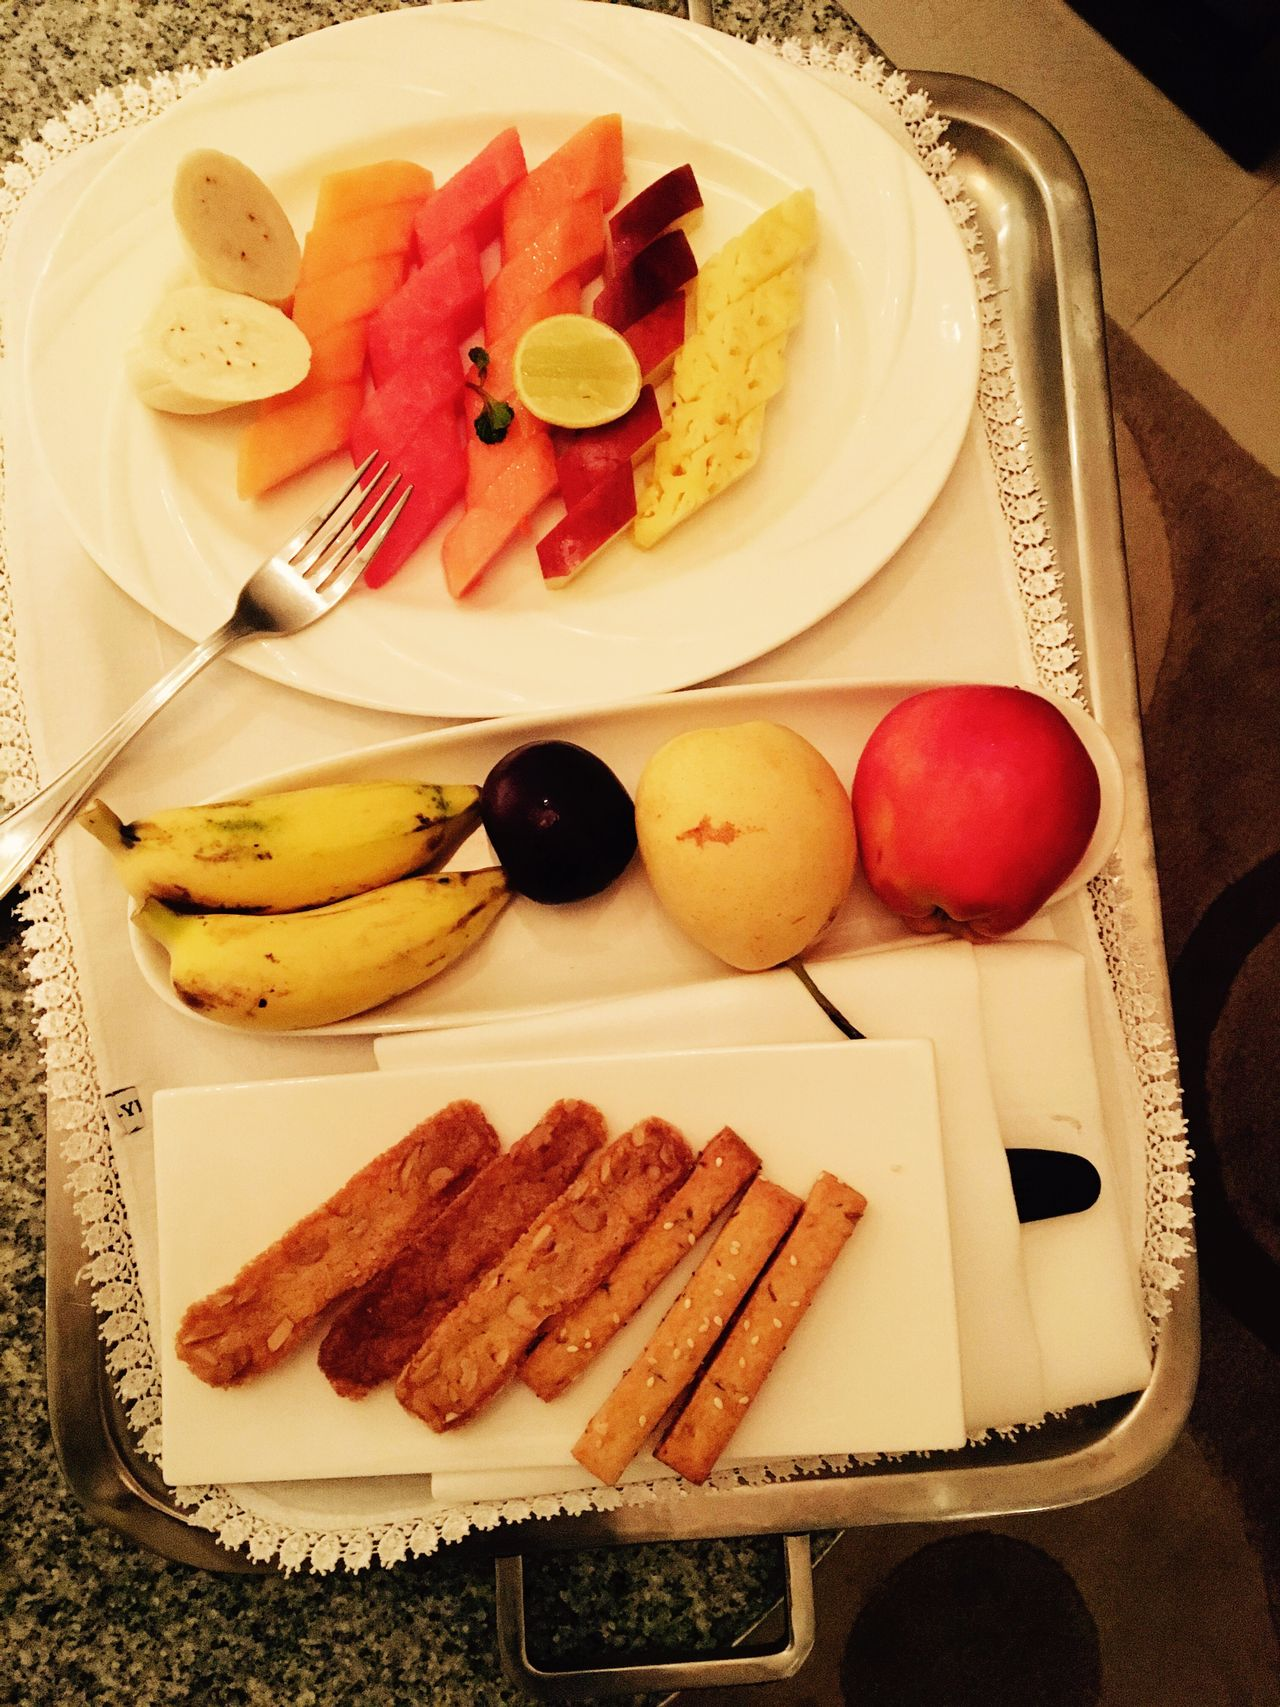 Food Food And Drink Plate Freshness Fruit Fork High Angle View Indoors  Healthy Eating SLICE Table Sweet Food Serving Size Ready-to-eat No People